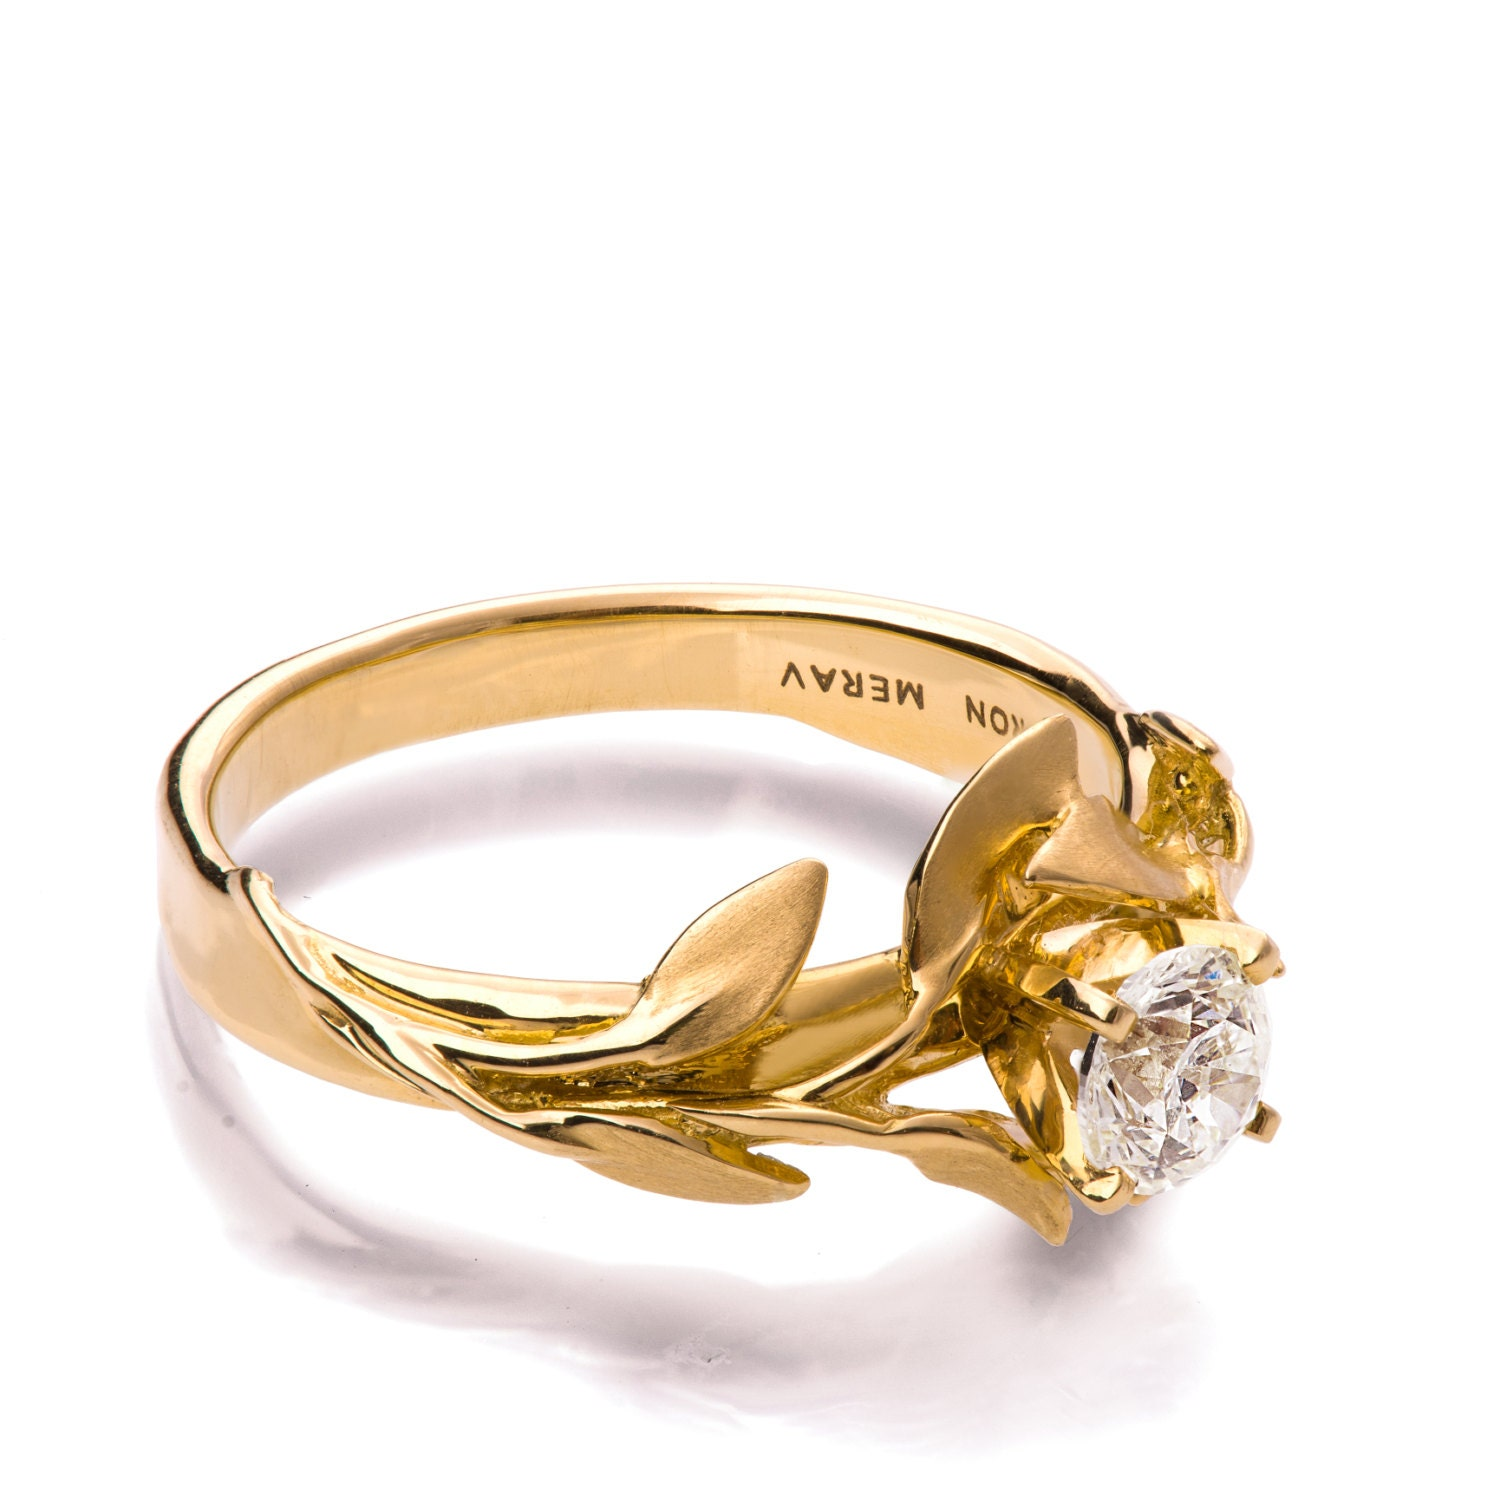 Leaves Engagement Ring No4 18K Yellow Gold and Diamond